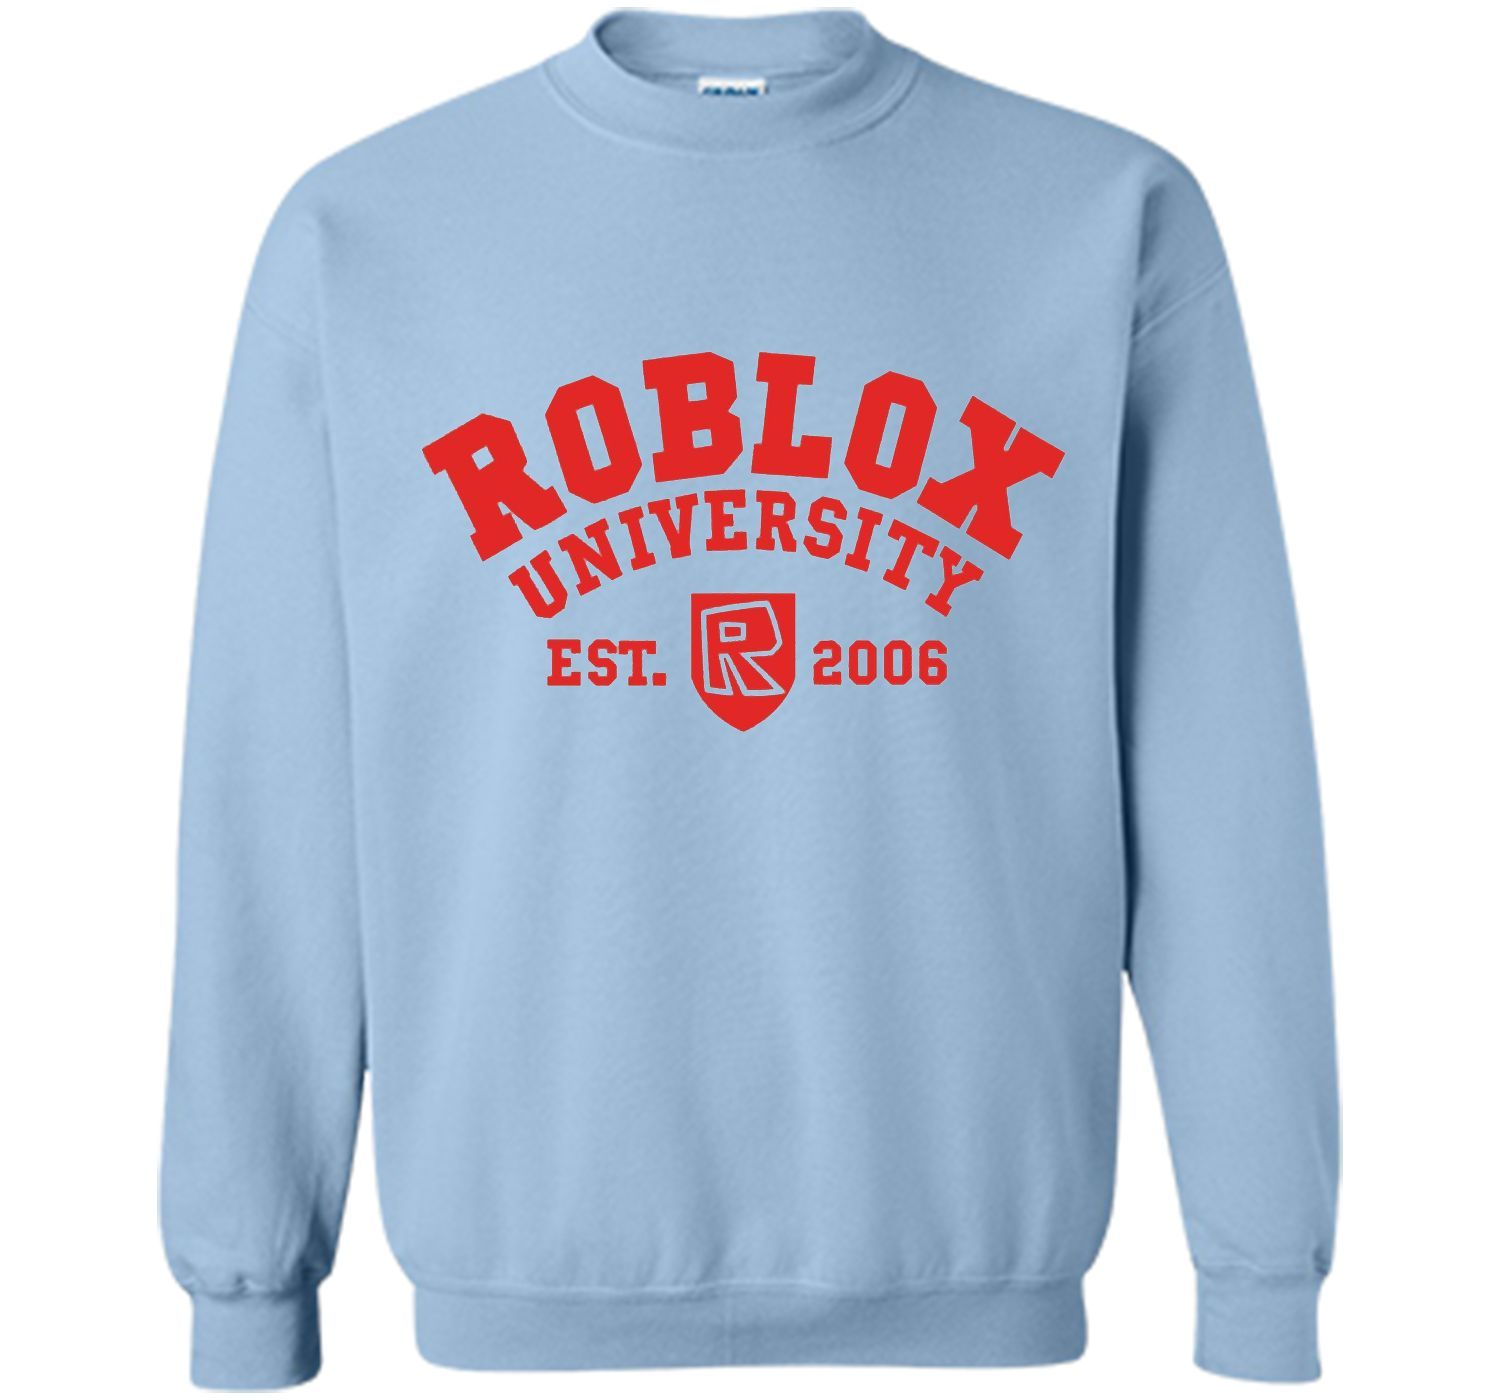 Black t shirt roblox - Roblox University T Shirt Shirt